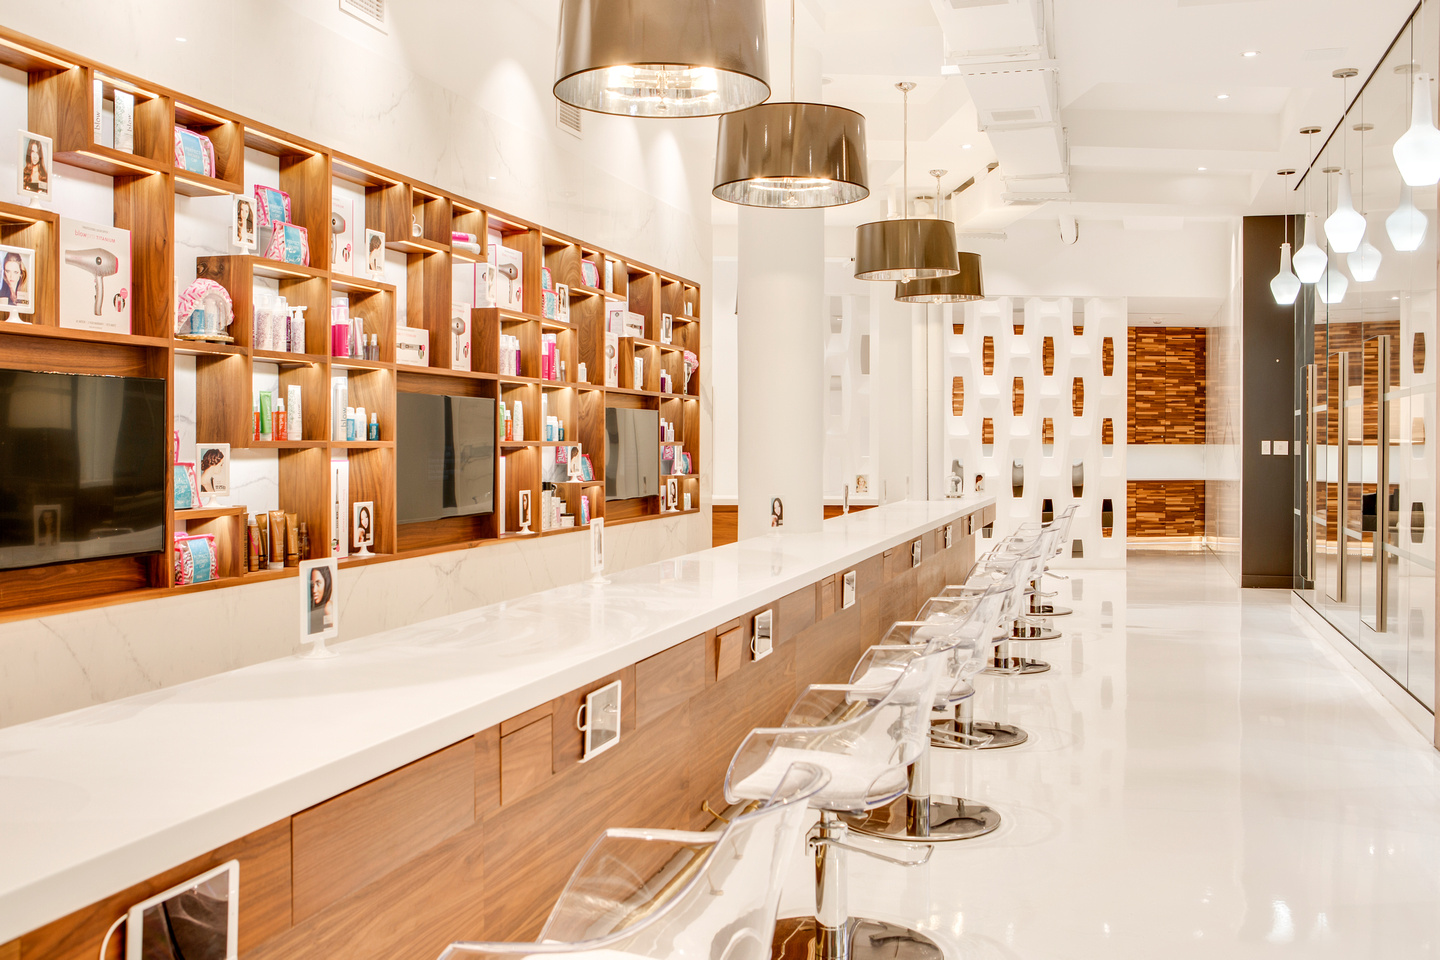 Oneblowdrybar at 151 west 34th street new york ny on fave for 37th street salon